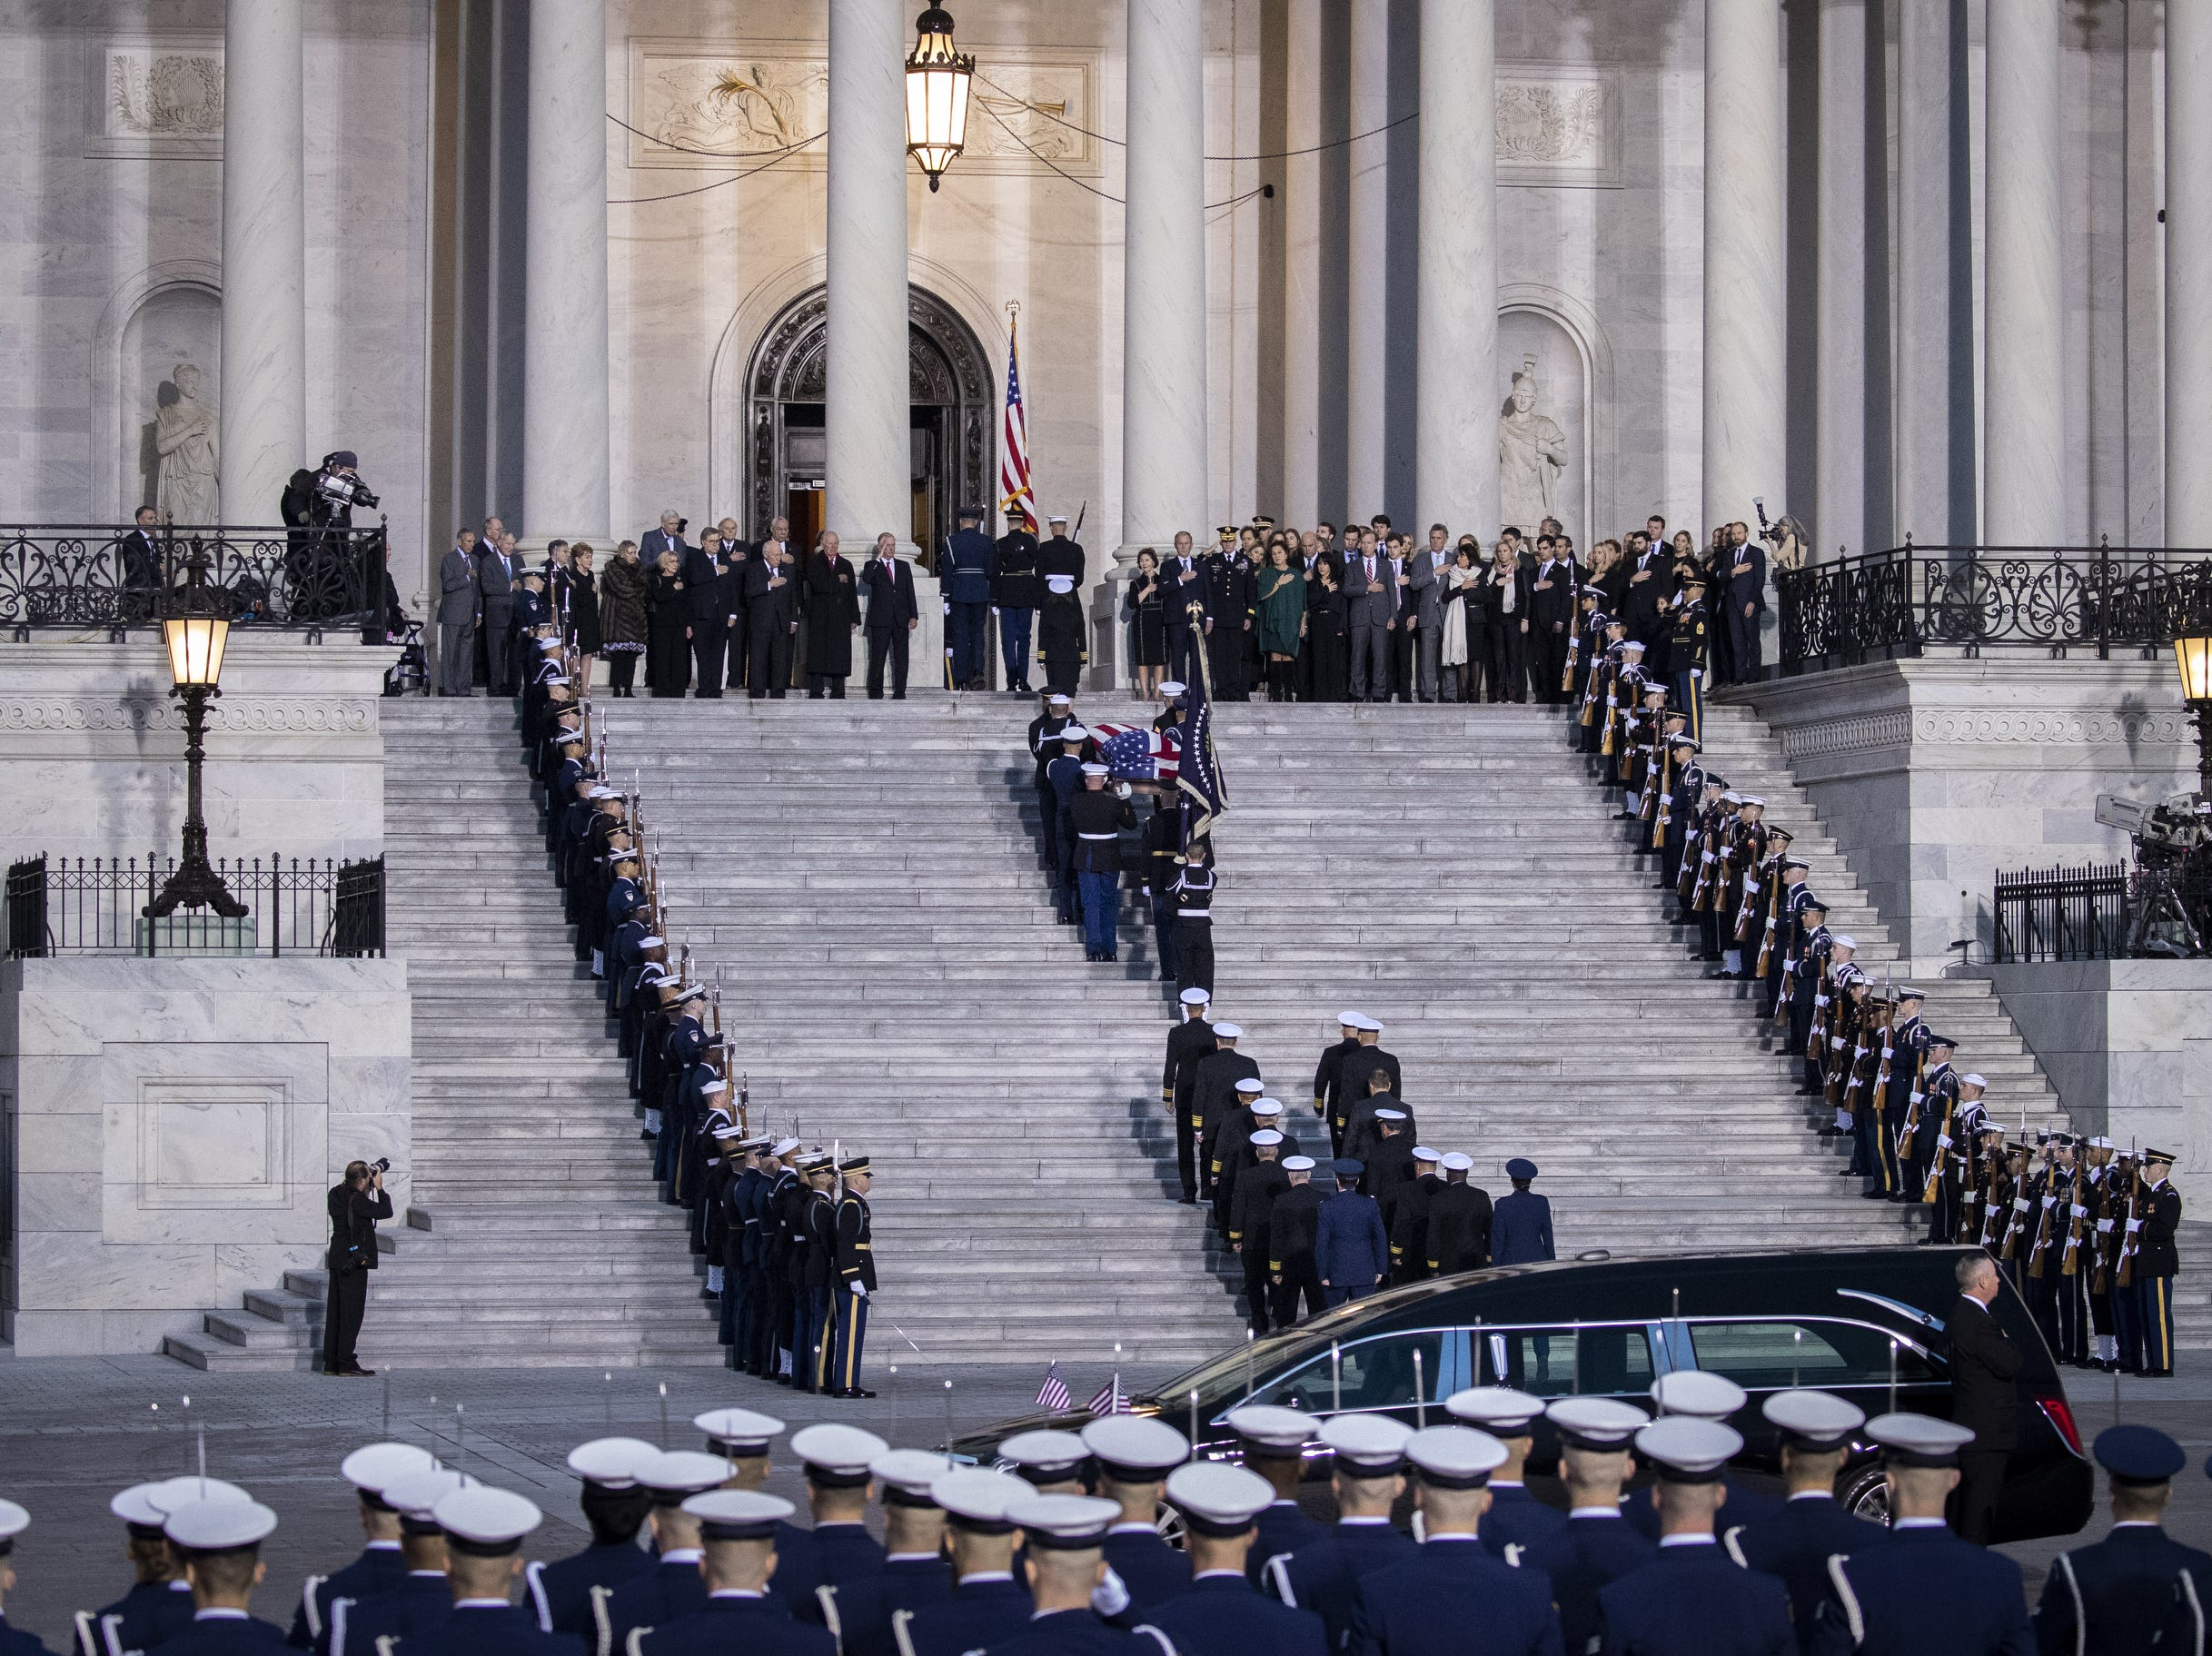 The casket of the late former President George H.W. Bush arrives at the U.S. Capitol, Dec. 3, 2018 in Washington, DC.